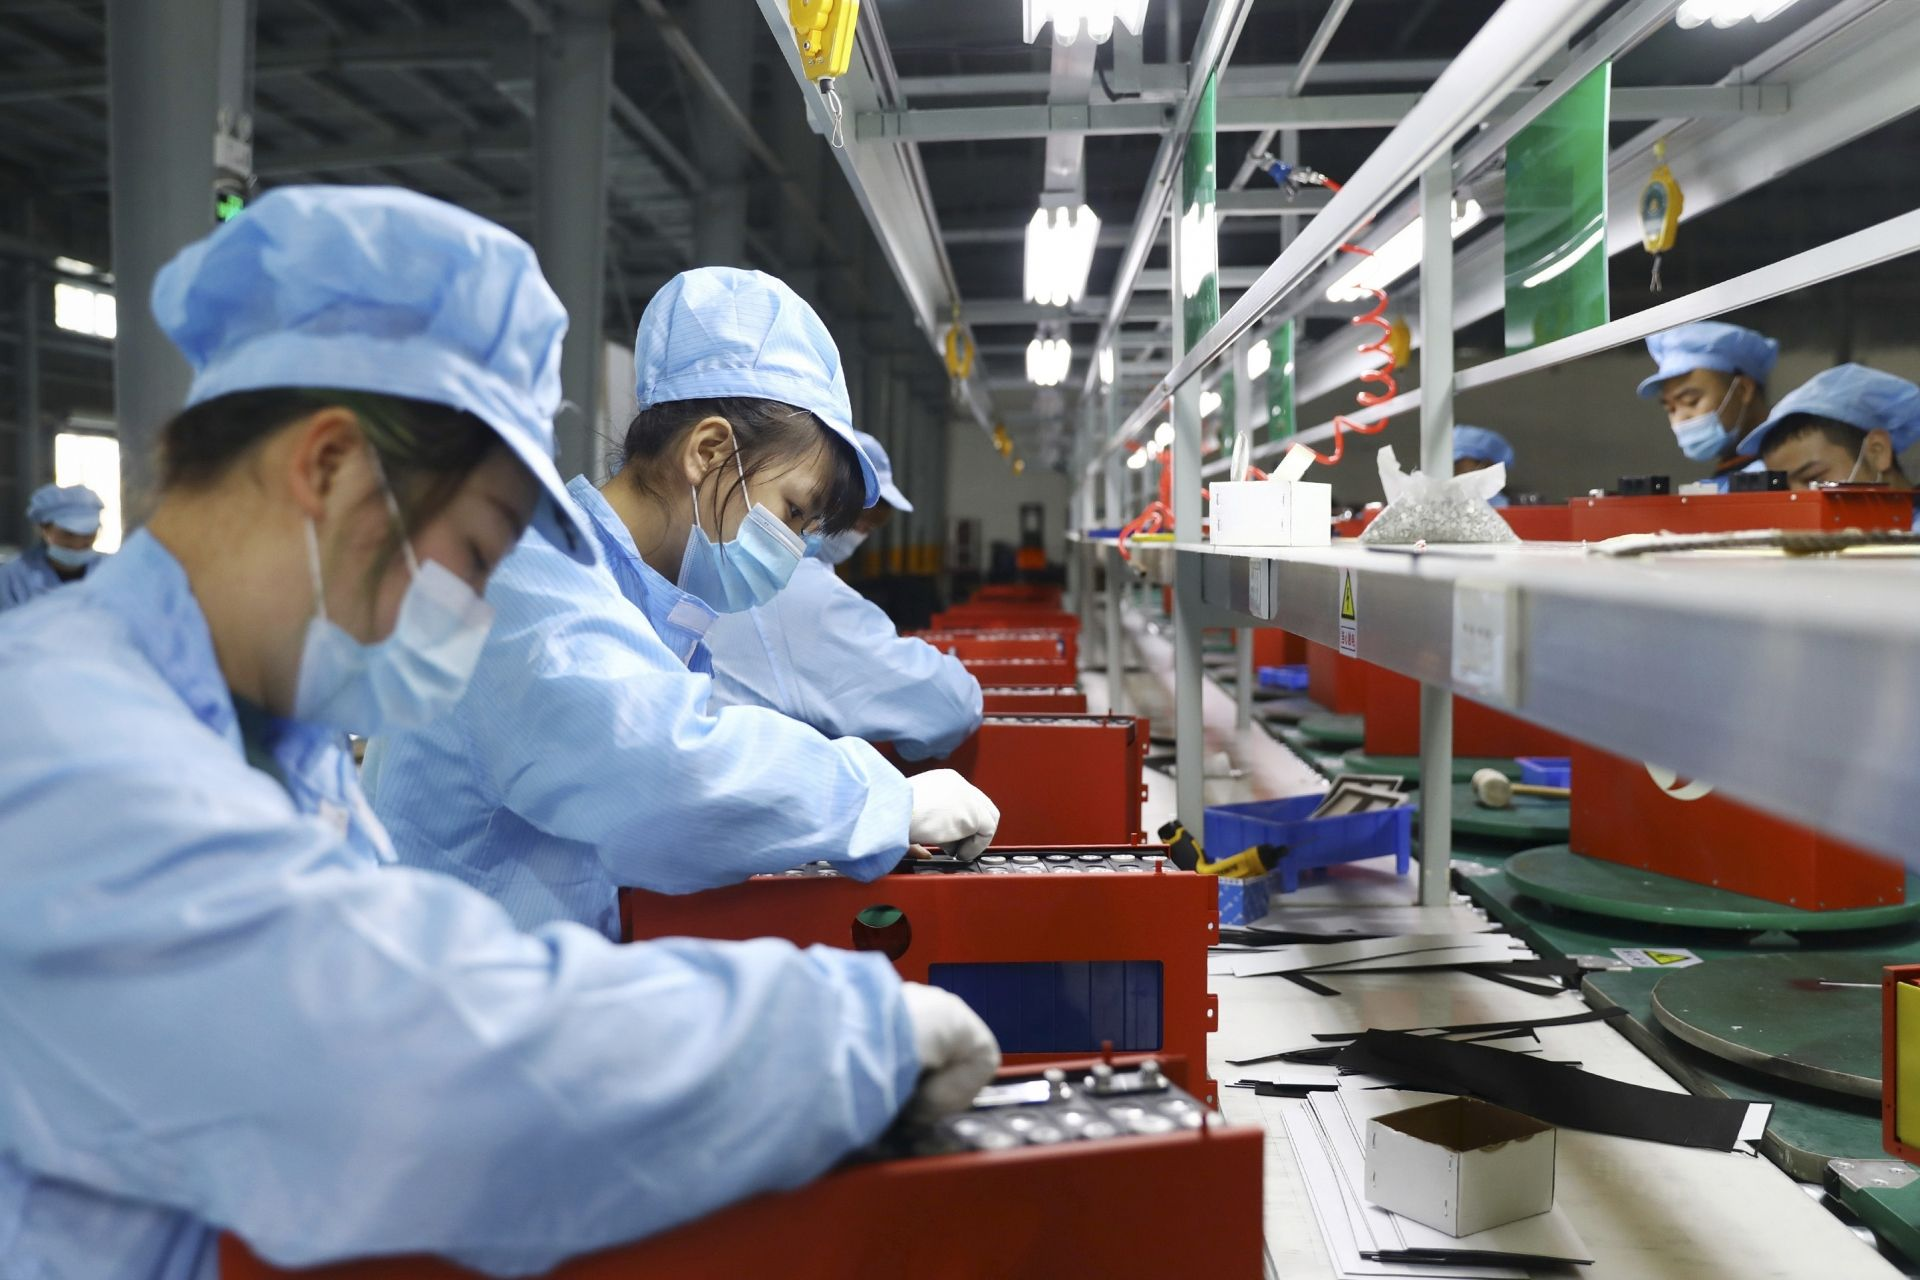 This photo taken on November 14, 2020 shows employees working in the workshop of a lithium battery manufacturing company in Huaibei, eastern China's Anhui province. (Photo by STR / AFP) / China OUT